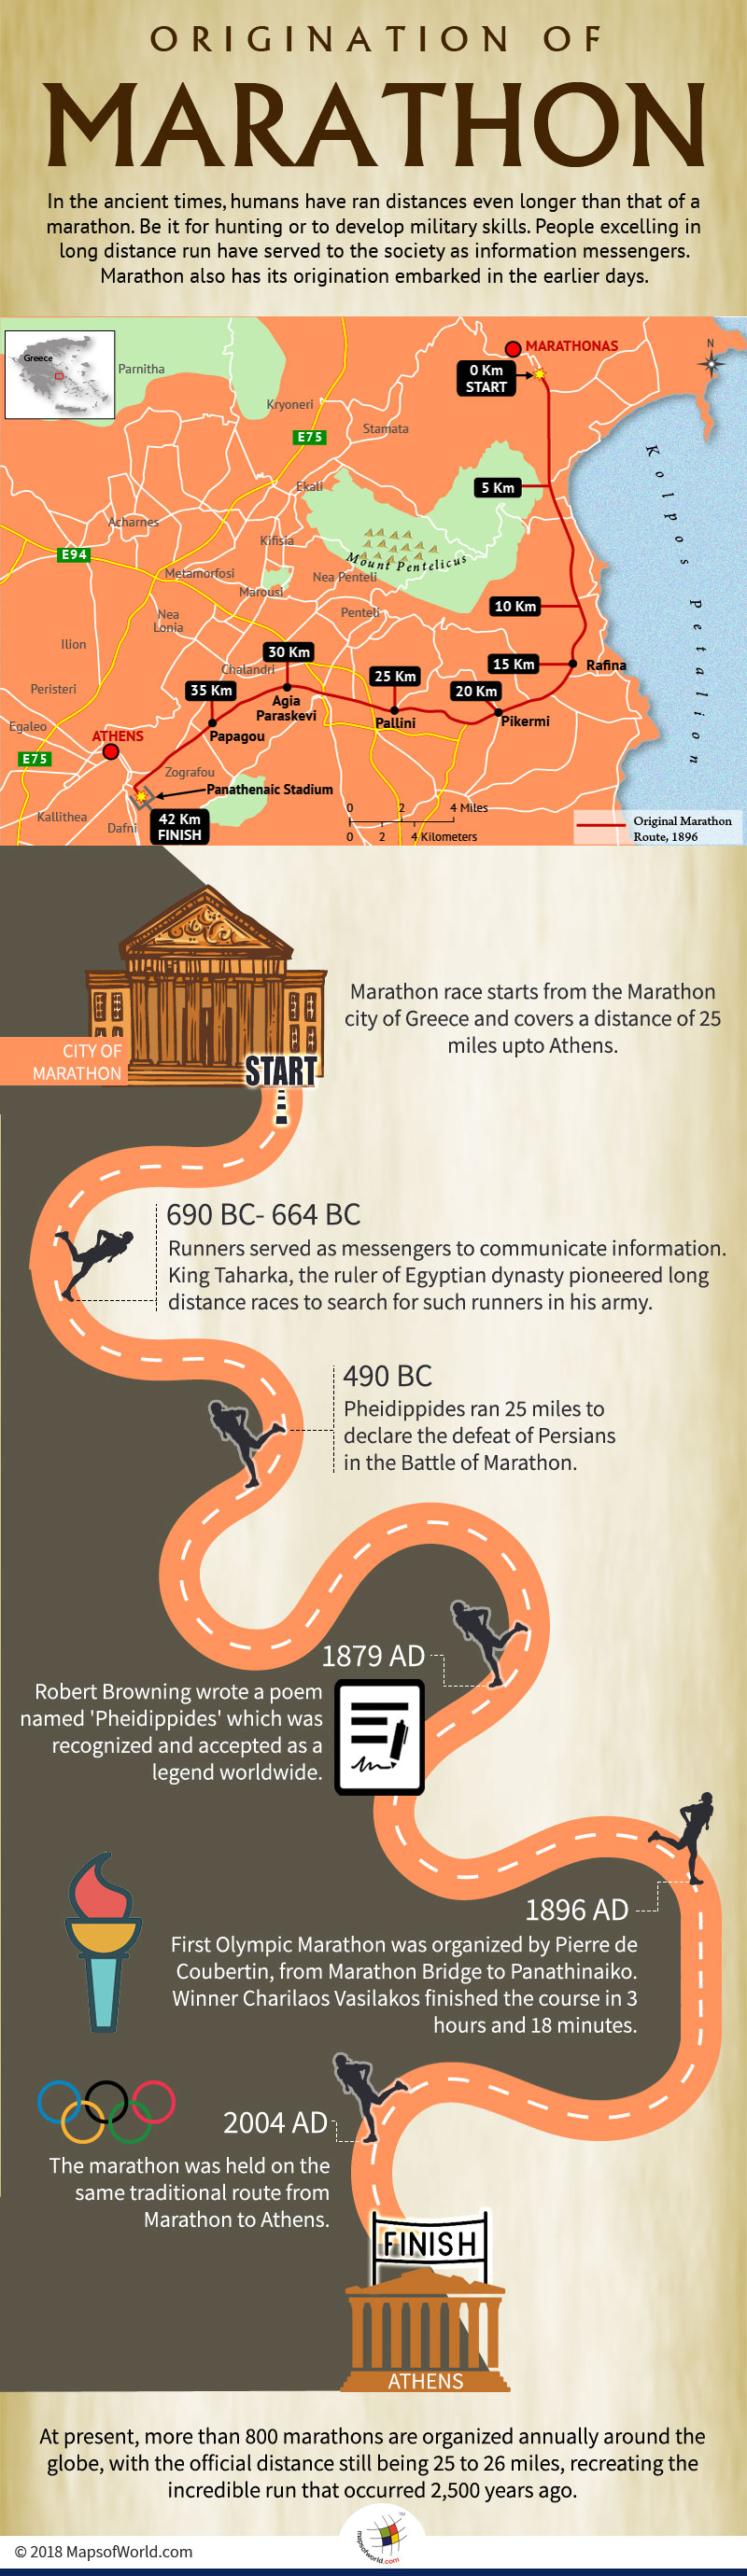 Infographic elaborating origination of Marathon